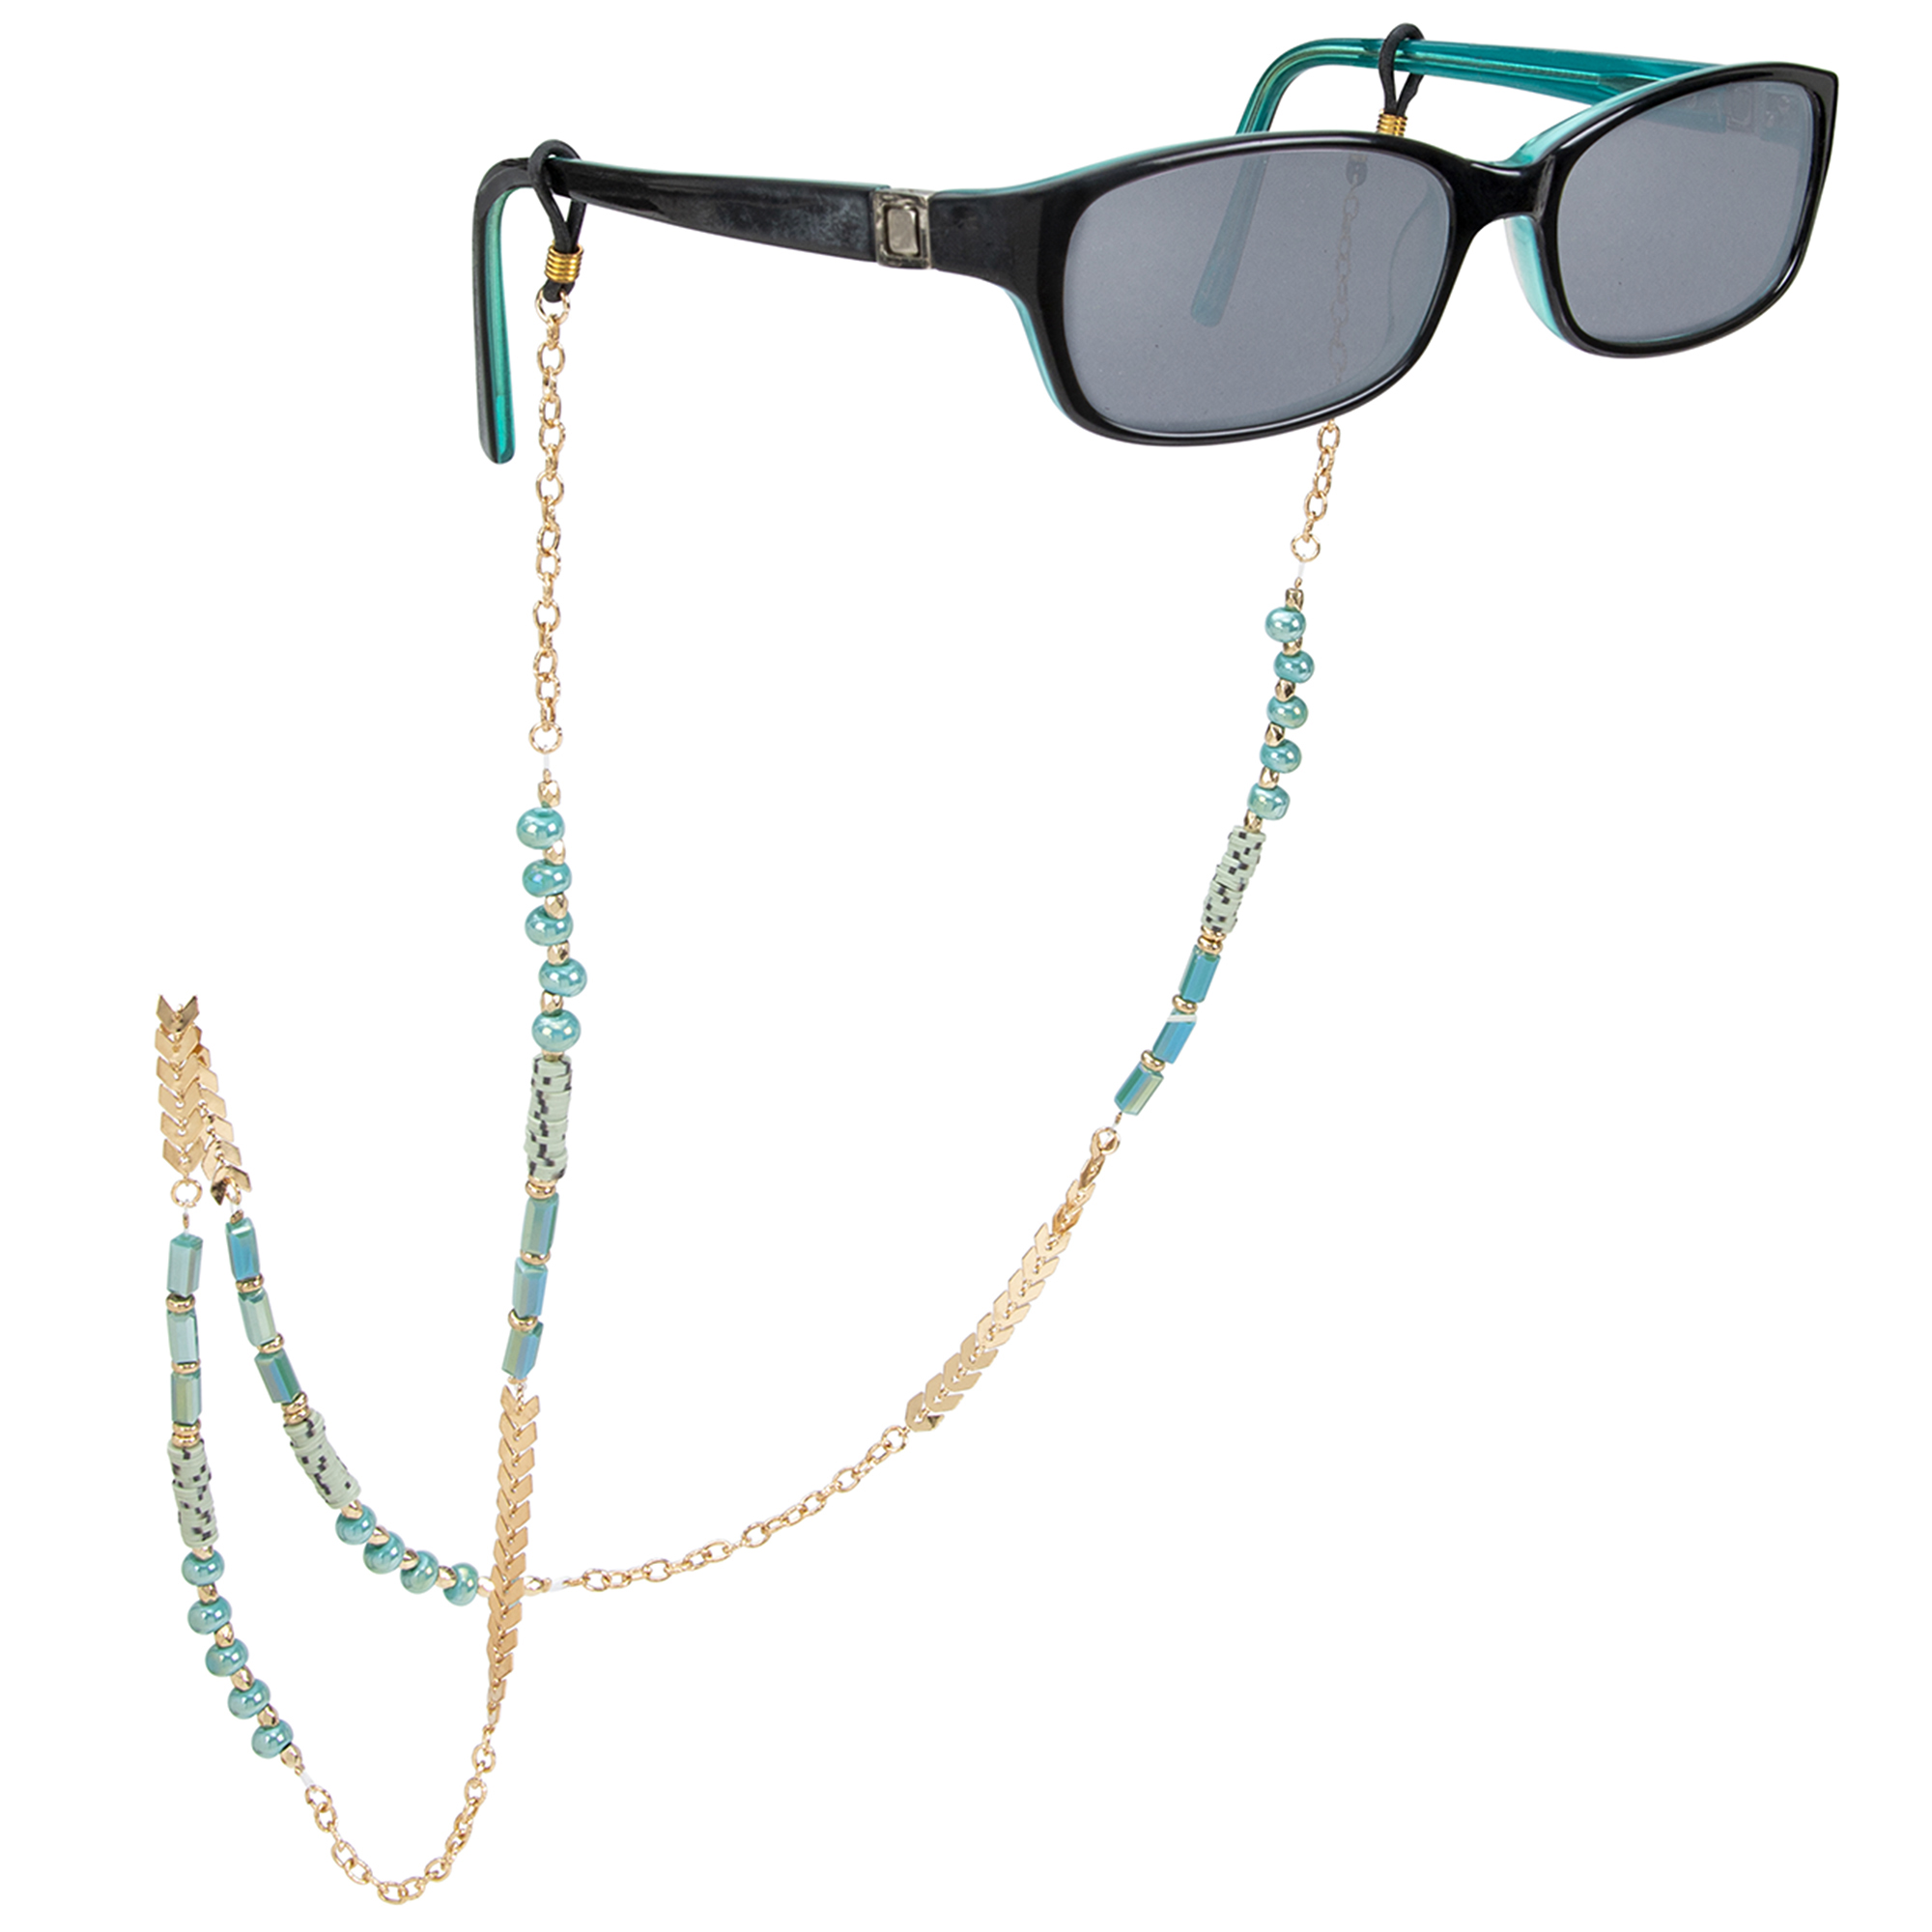 Turquoise and Gold Boho Chain Eyeglass/Sunglass Retainer - Turquoise - Front